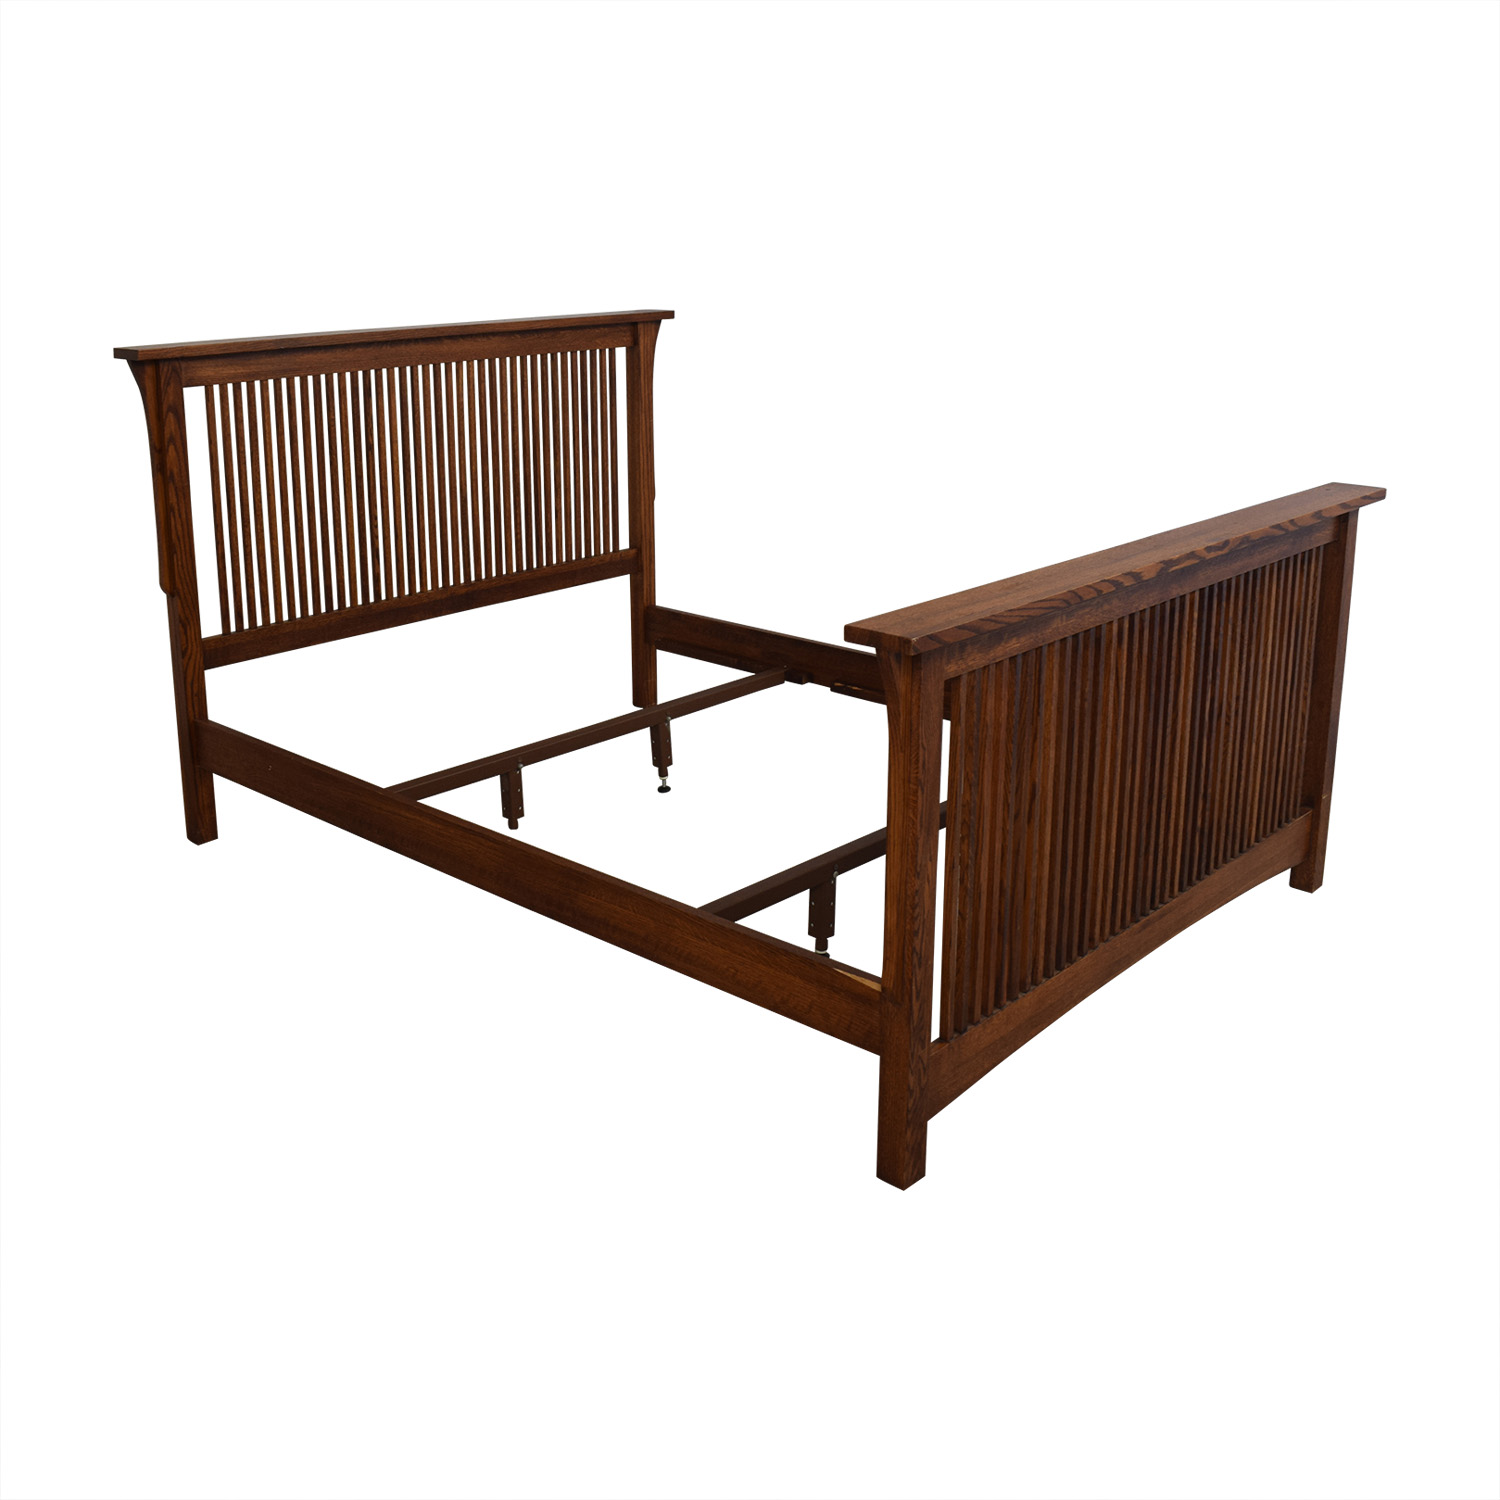 Spindle Mission Style Oak Queen Bed Frame brown